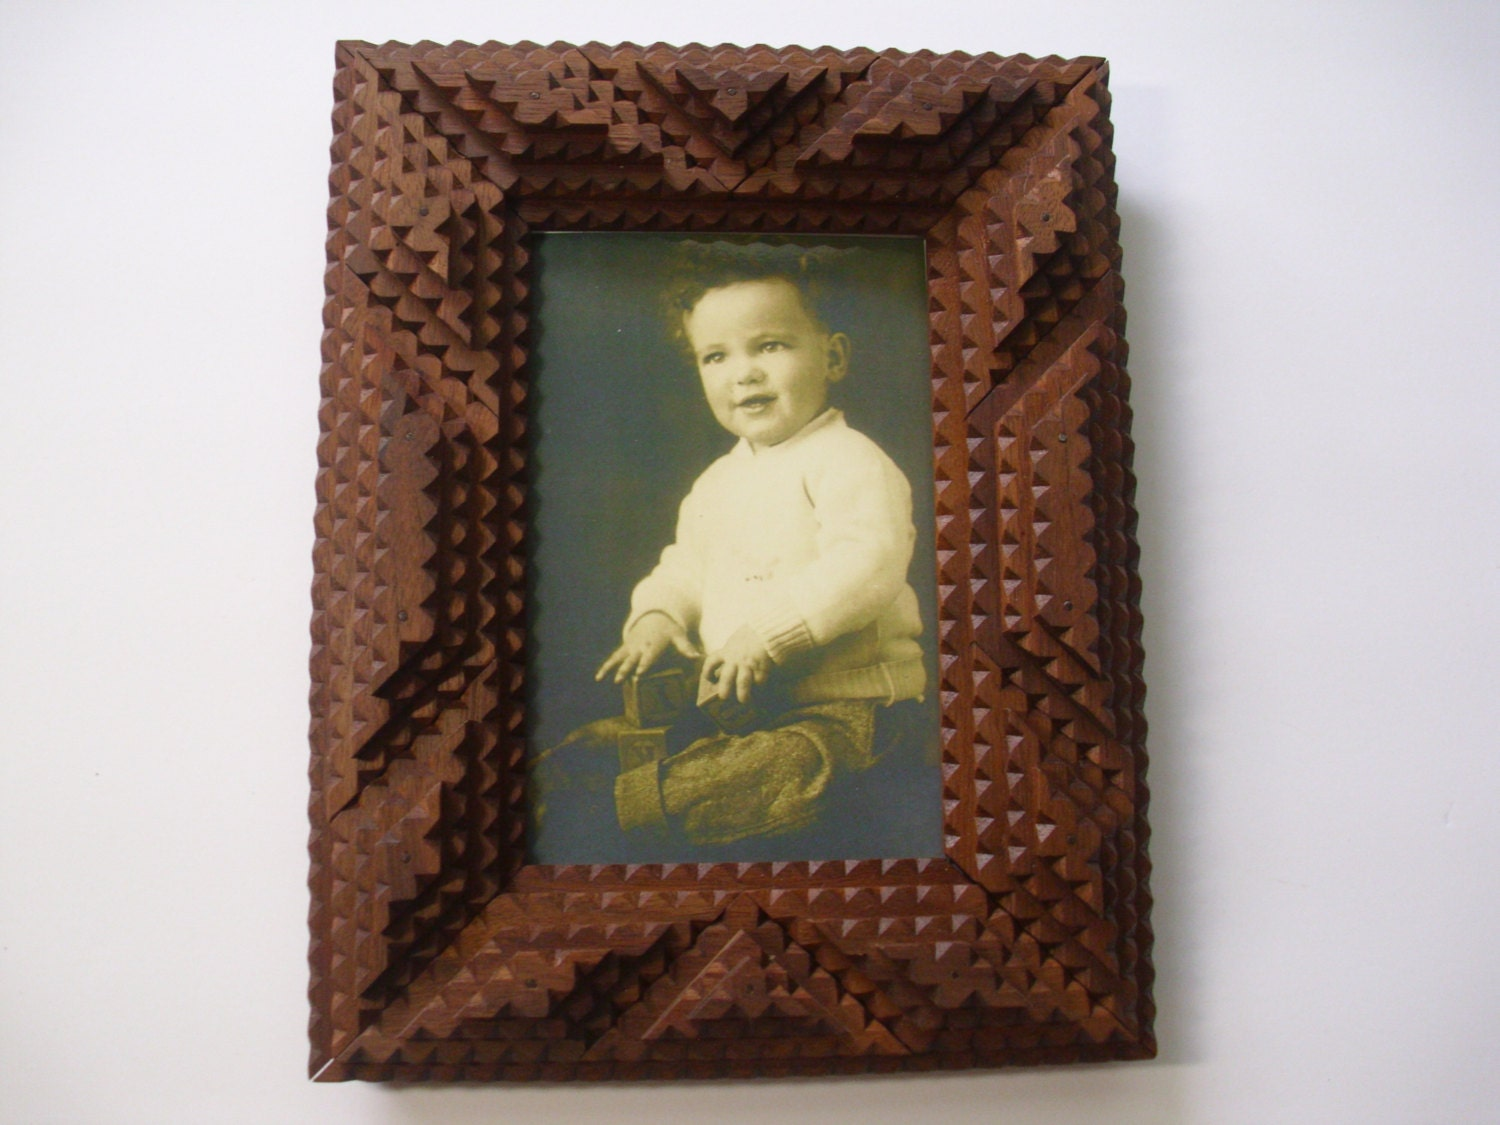 Handcarved Wood Tramp Art Frame Wood Picture Frame Folk Art